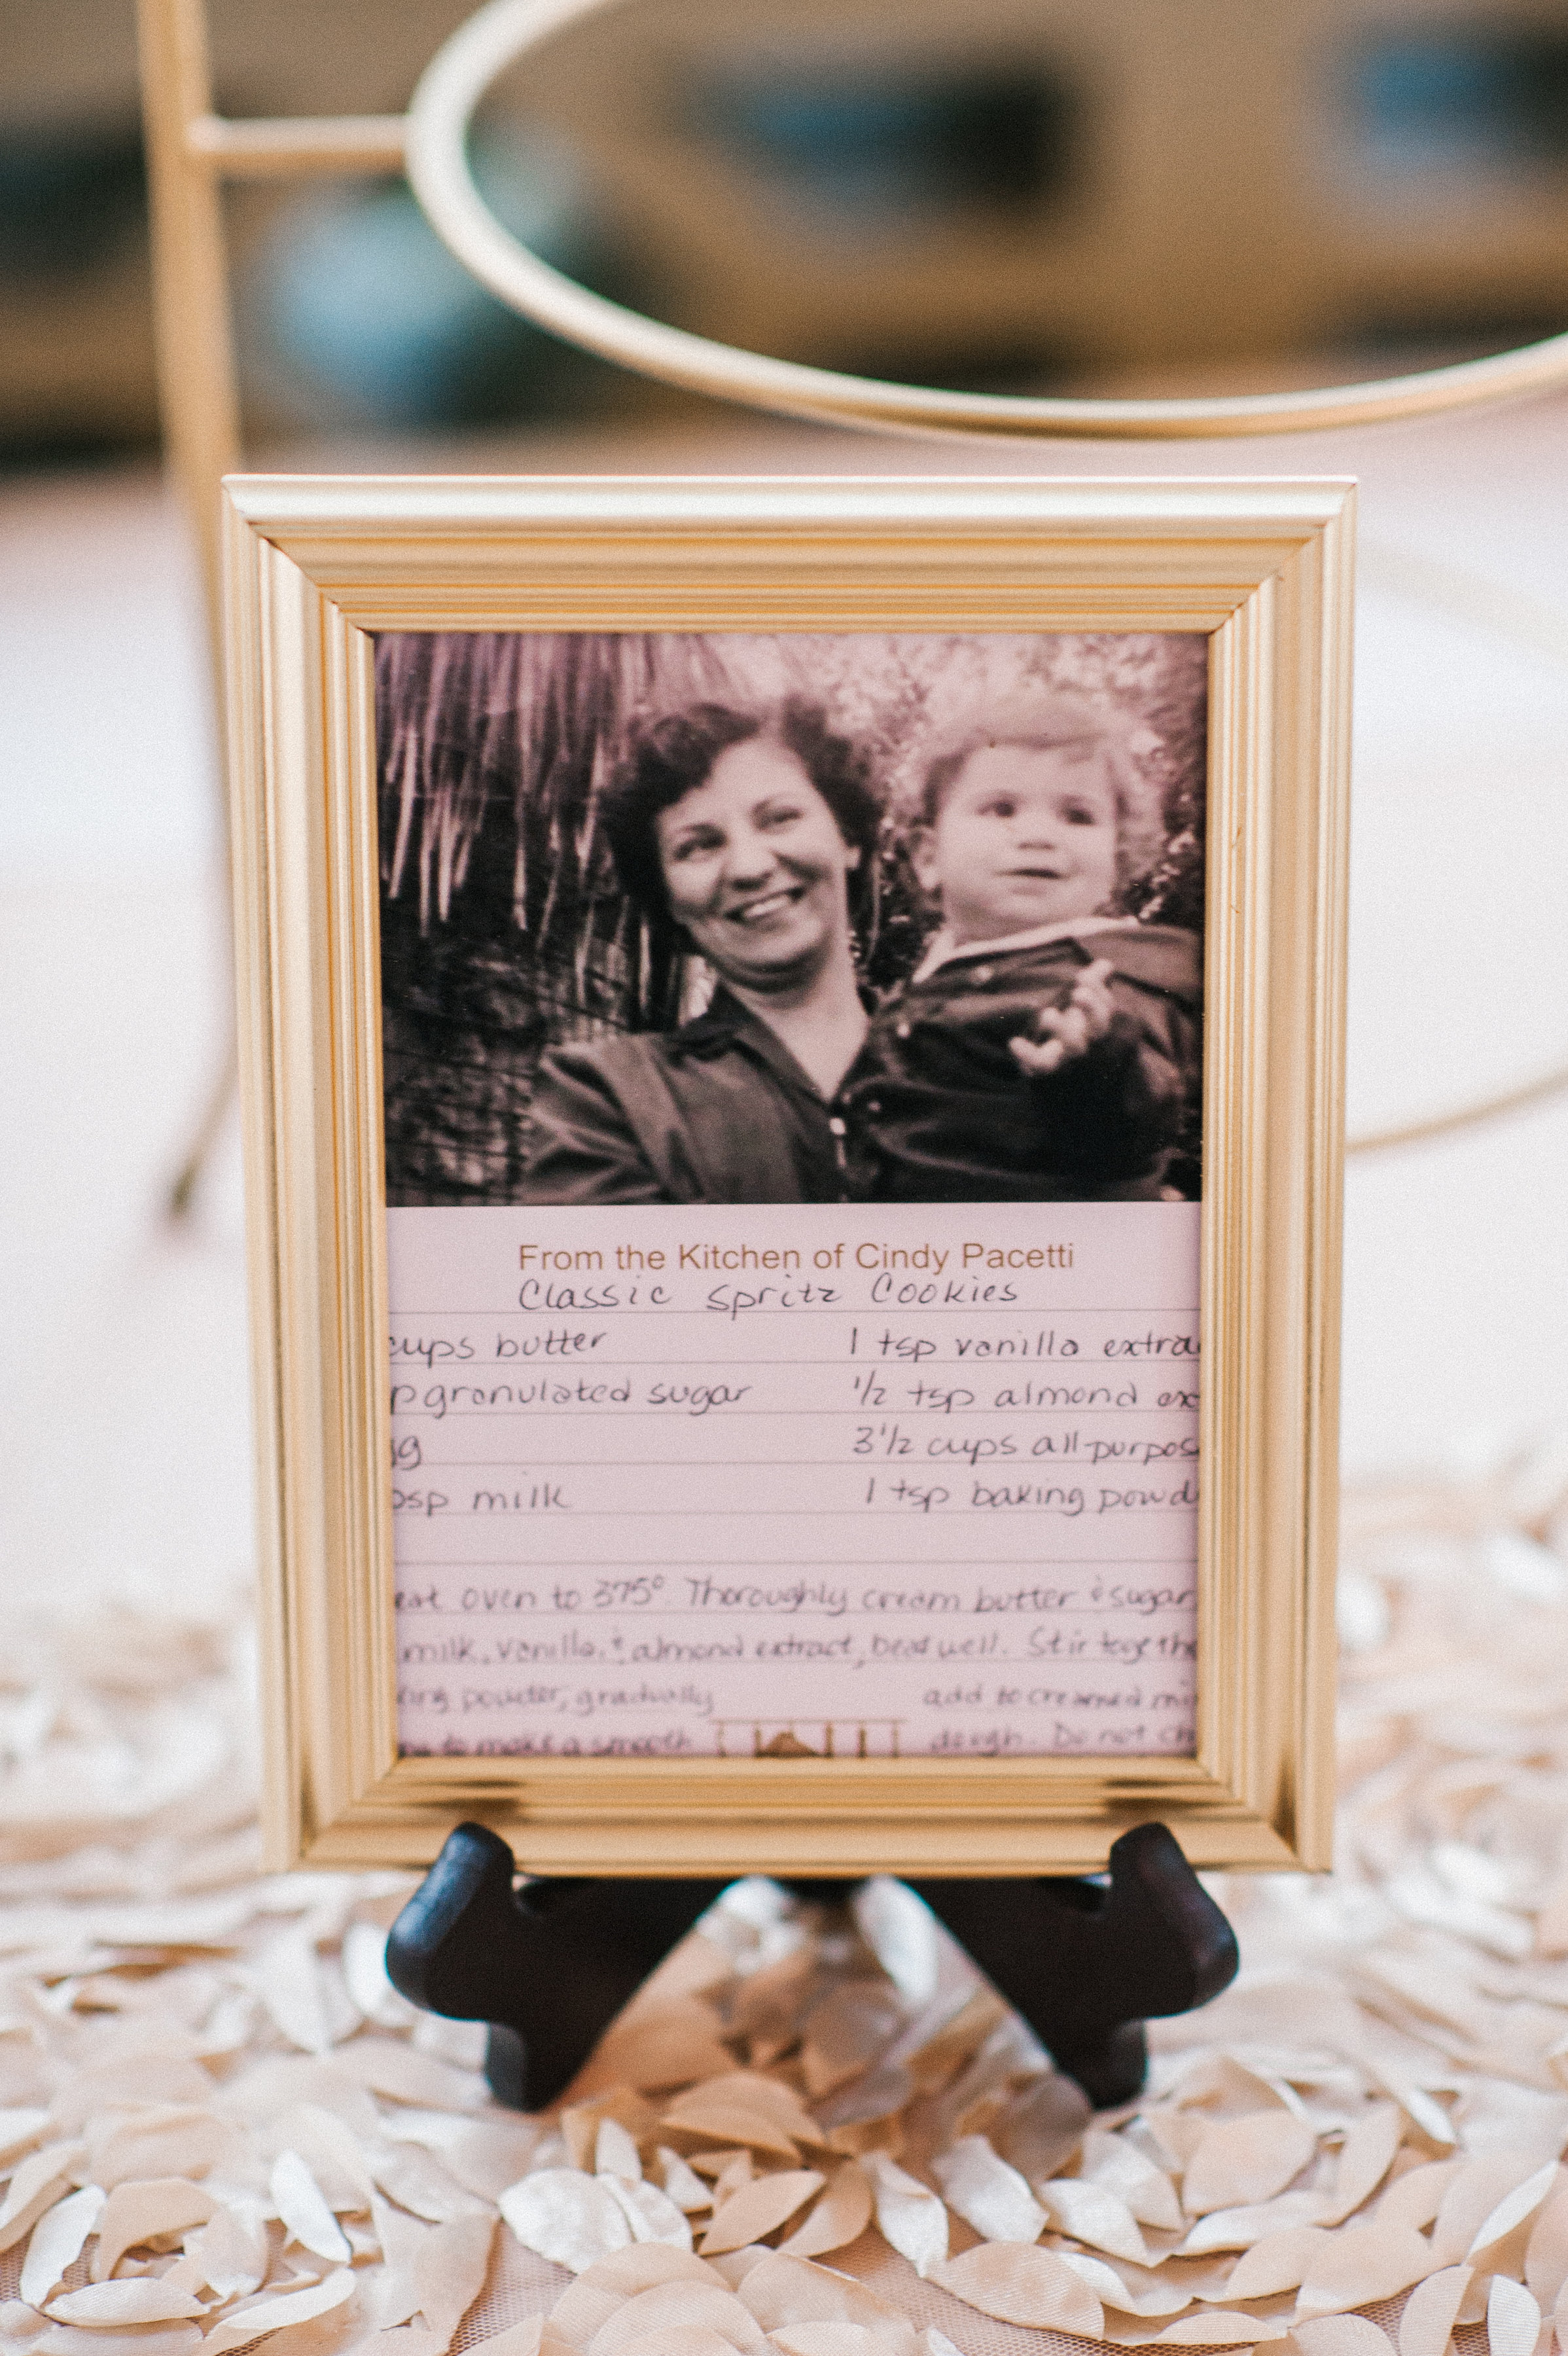 Each homemade sweet treat was accompanied by an old family photograph and the family recipe for each dessert.